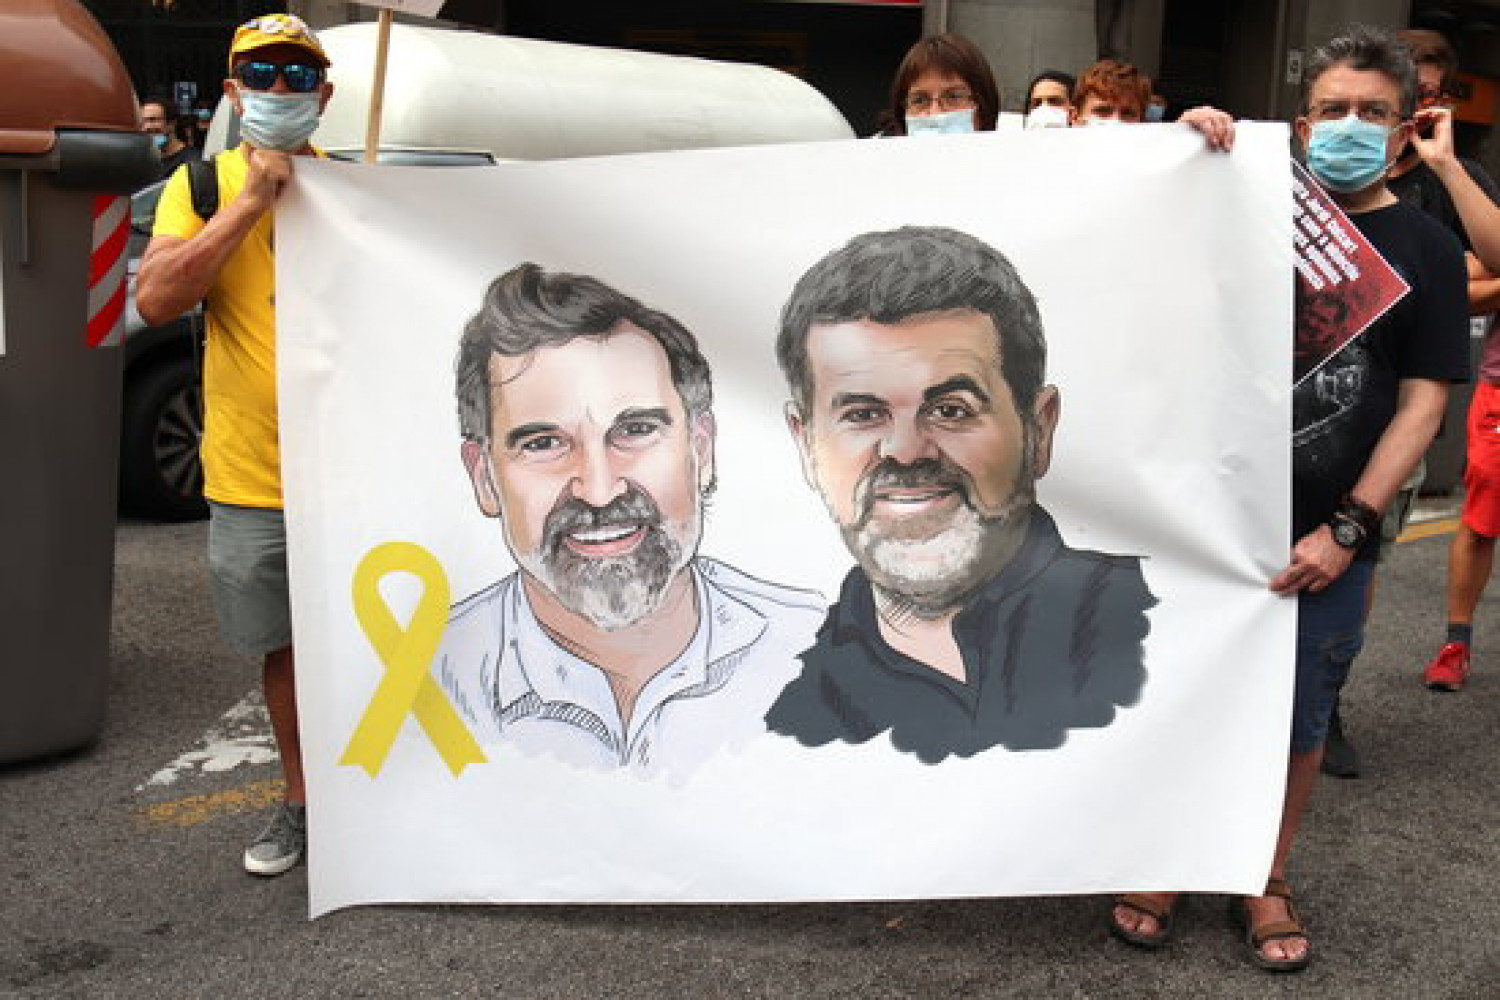 Banner in support of the two pro-independence activists jailed in the Catalan Trial, Jordi Sànchez and Jordi Cuixart (by Aina Martí)